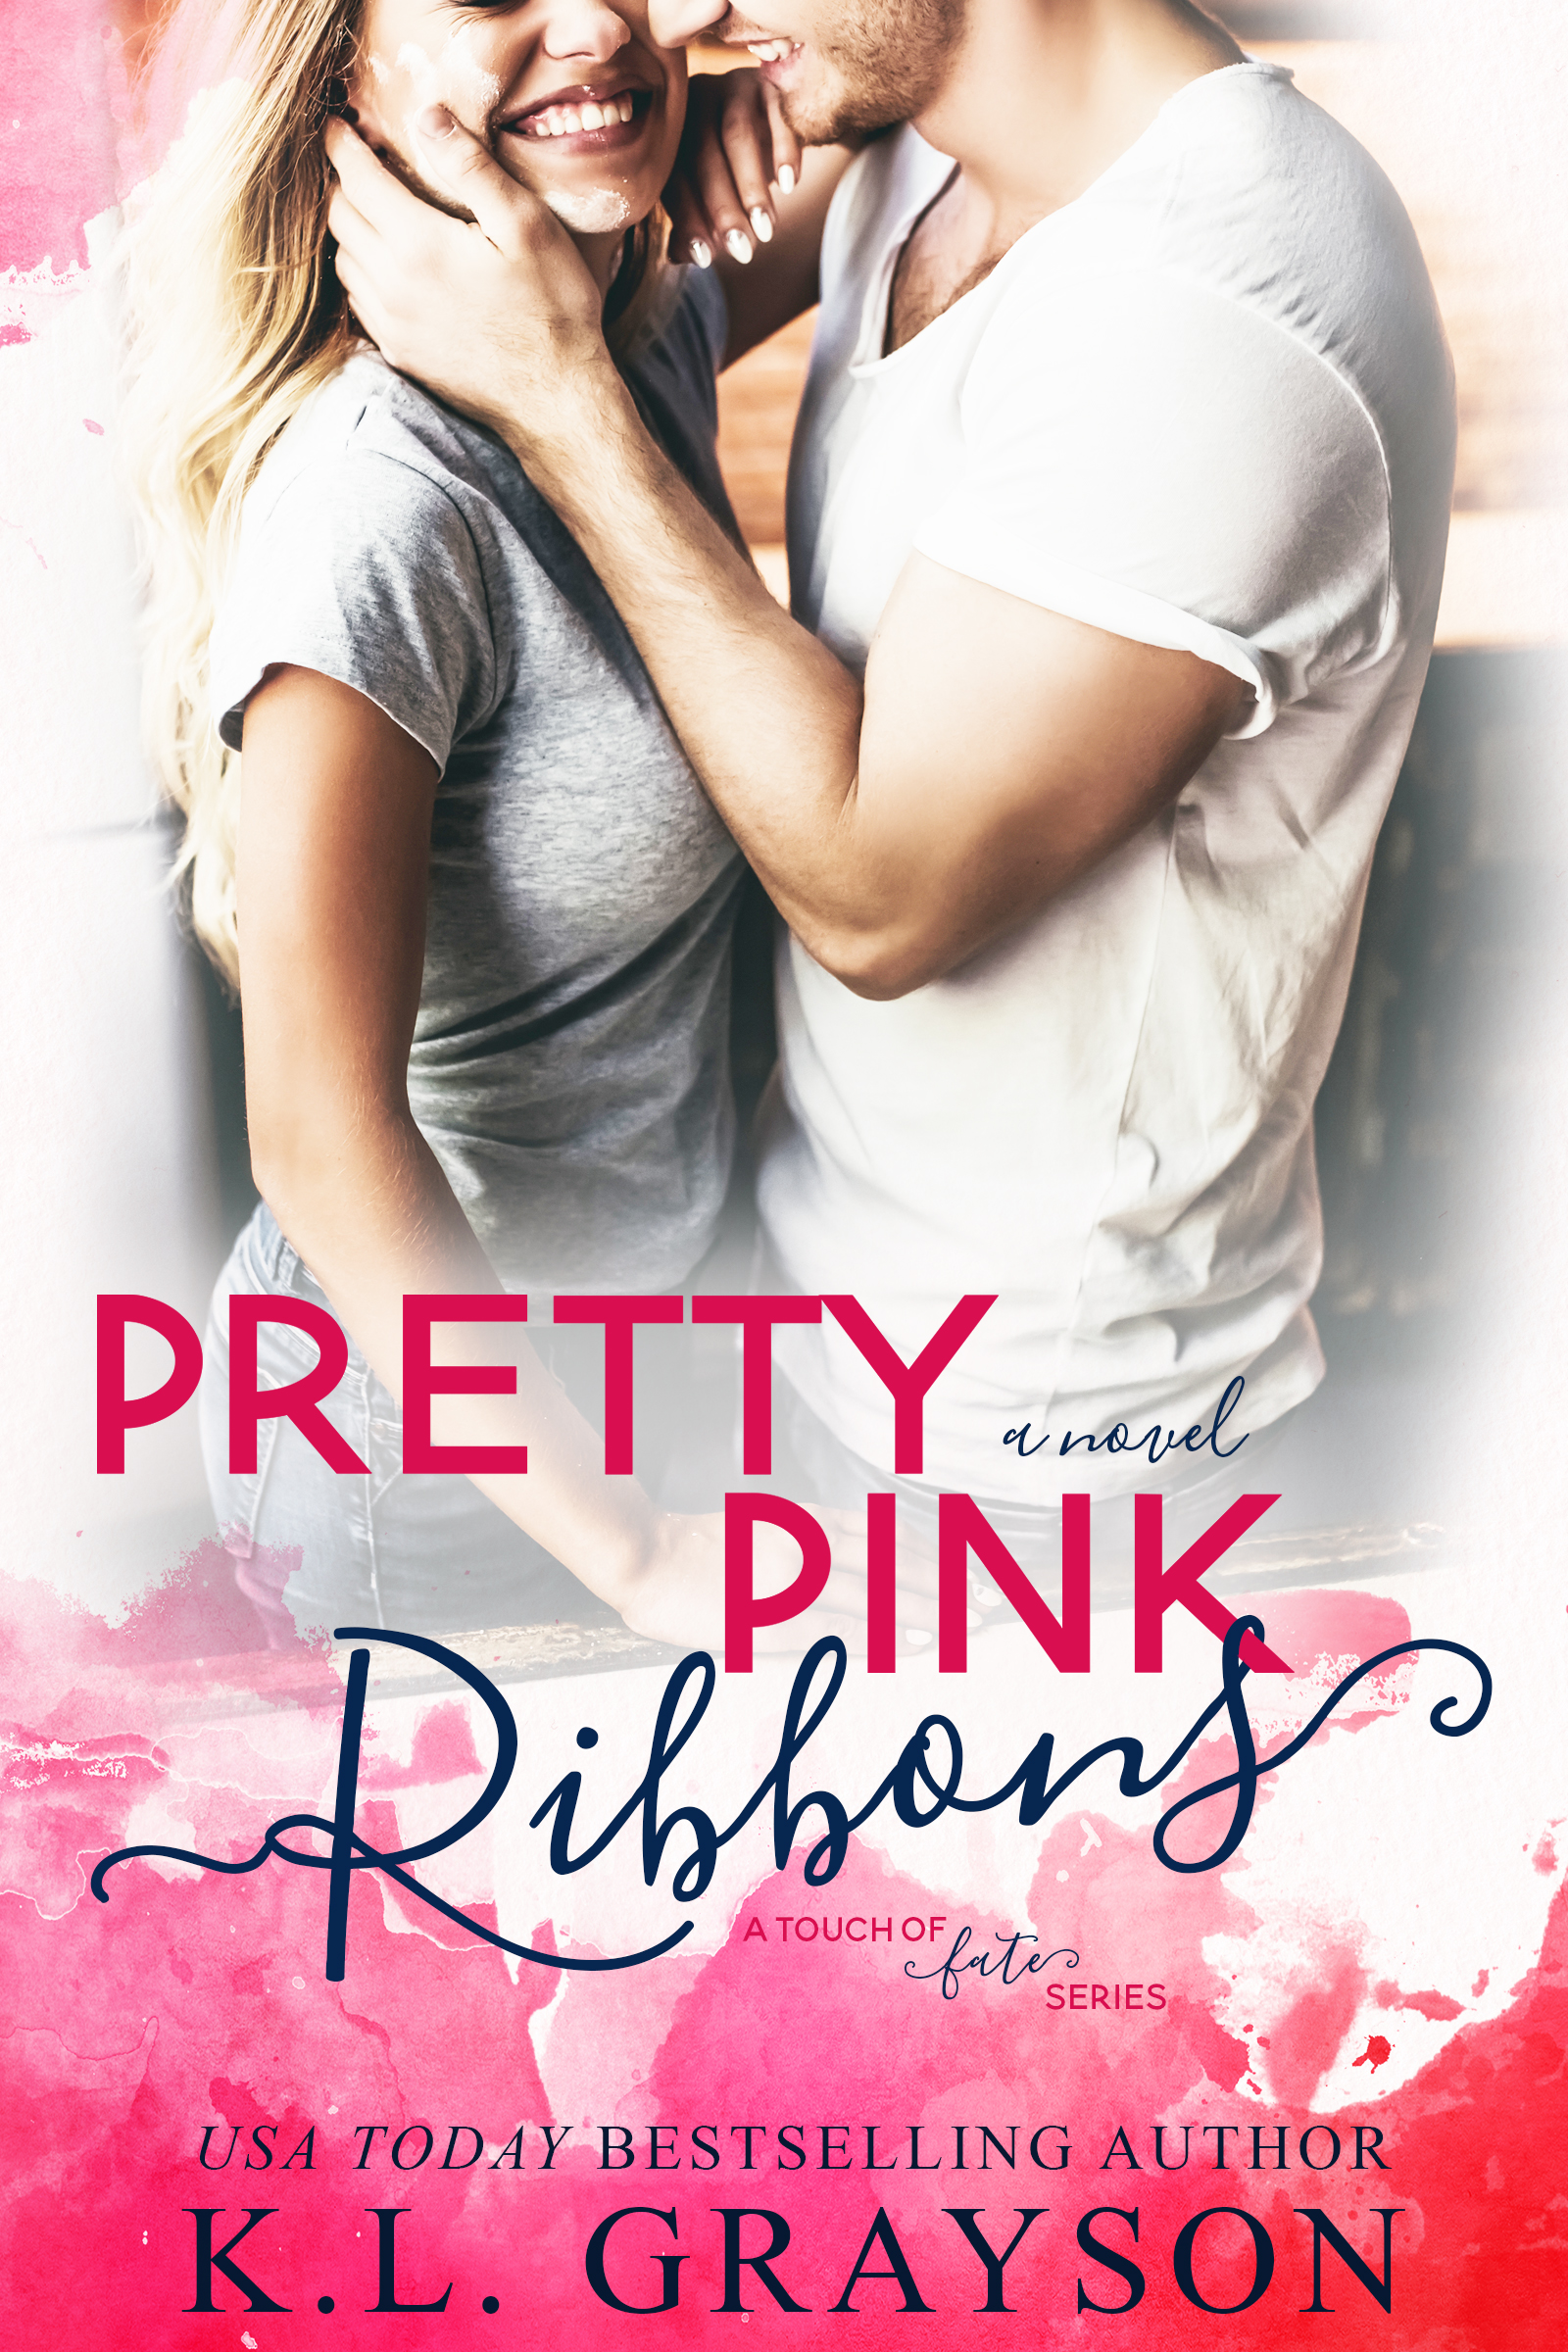 Pretty Pink Ribbons by KL Grayson